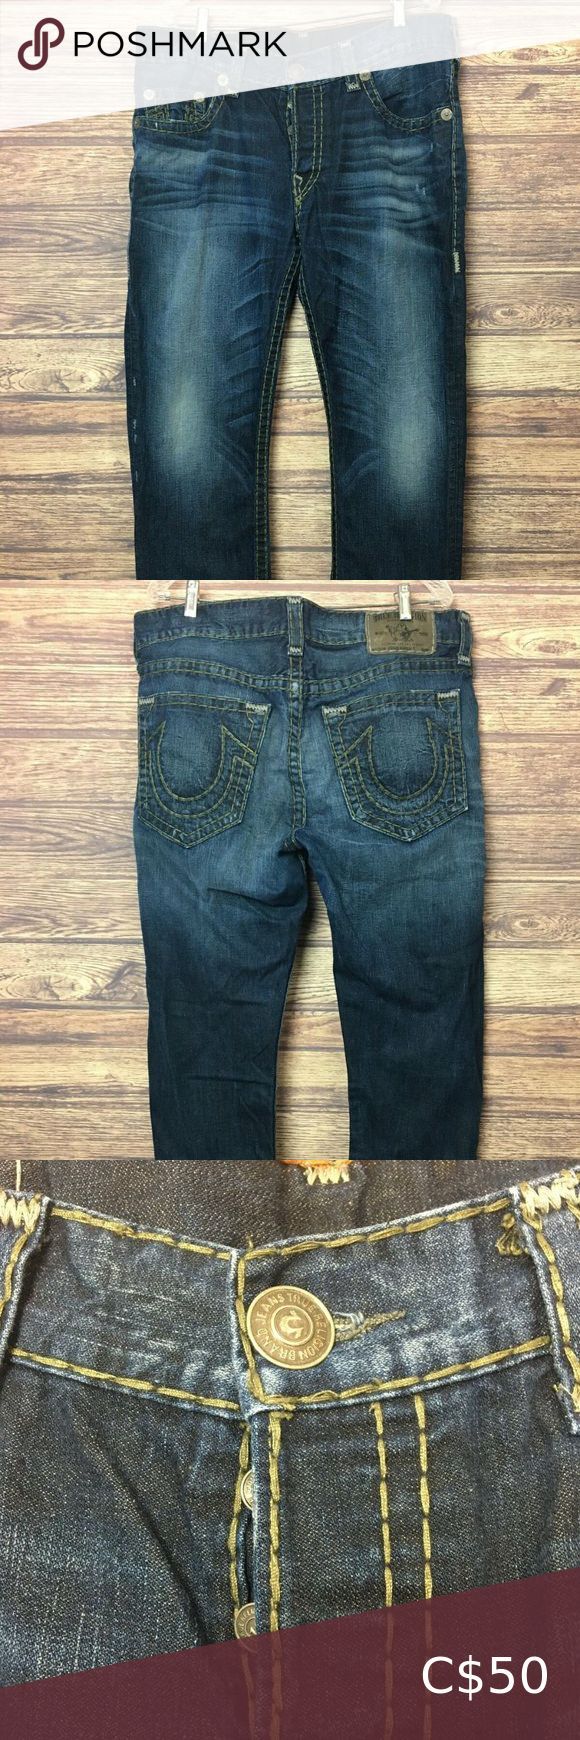 Men's True Religion Geno Super T Jeans Blue Wash Men's True Religion Mens Geno Super T Jeans HEMMED Light Green Stitching. Features iconic construction with contrast super t stitch detailing to highlight the impeccable fit, fabric and wash details. Color Blue Wash. Excellent condition. See photos for full details.  Measurements:  Hemmed: 42